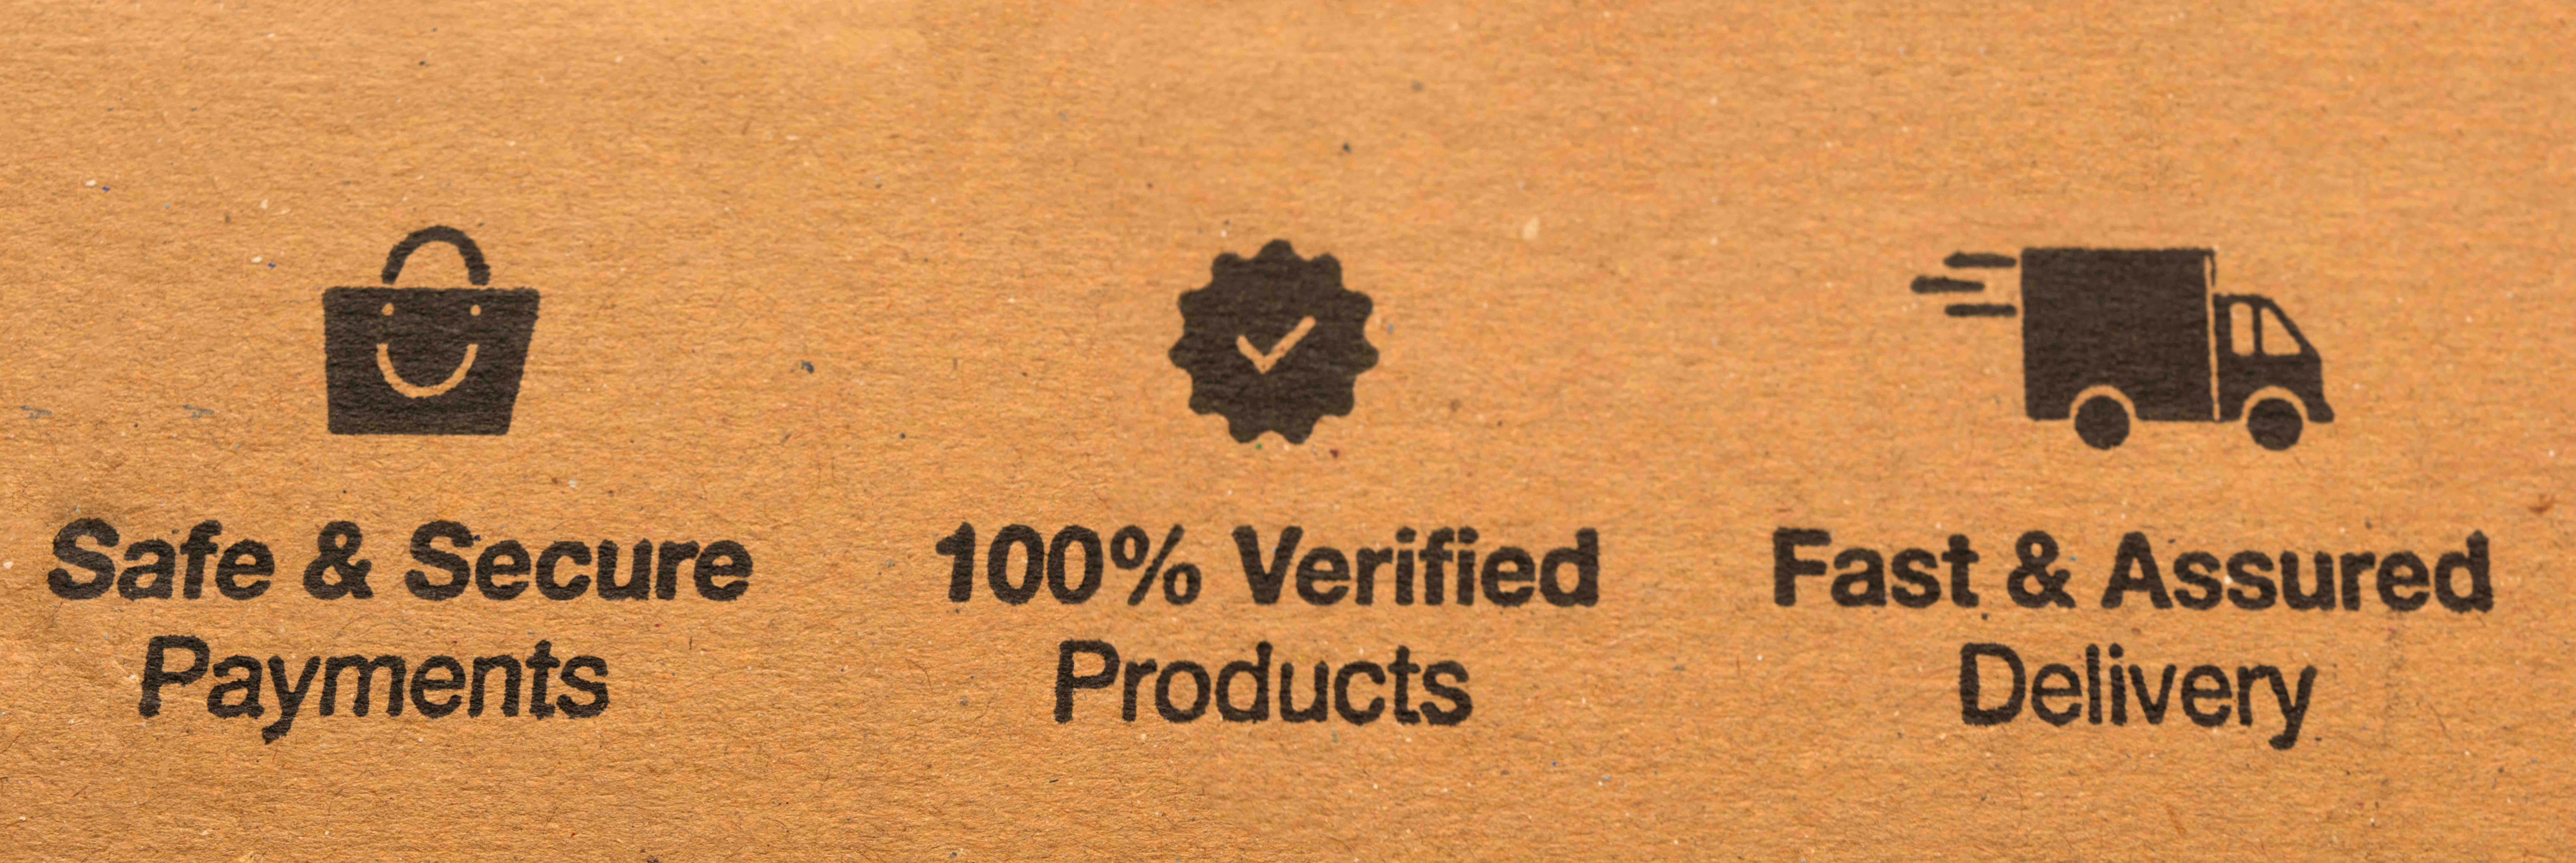 verifiedproducts.jpg